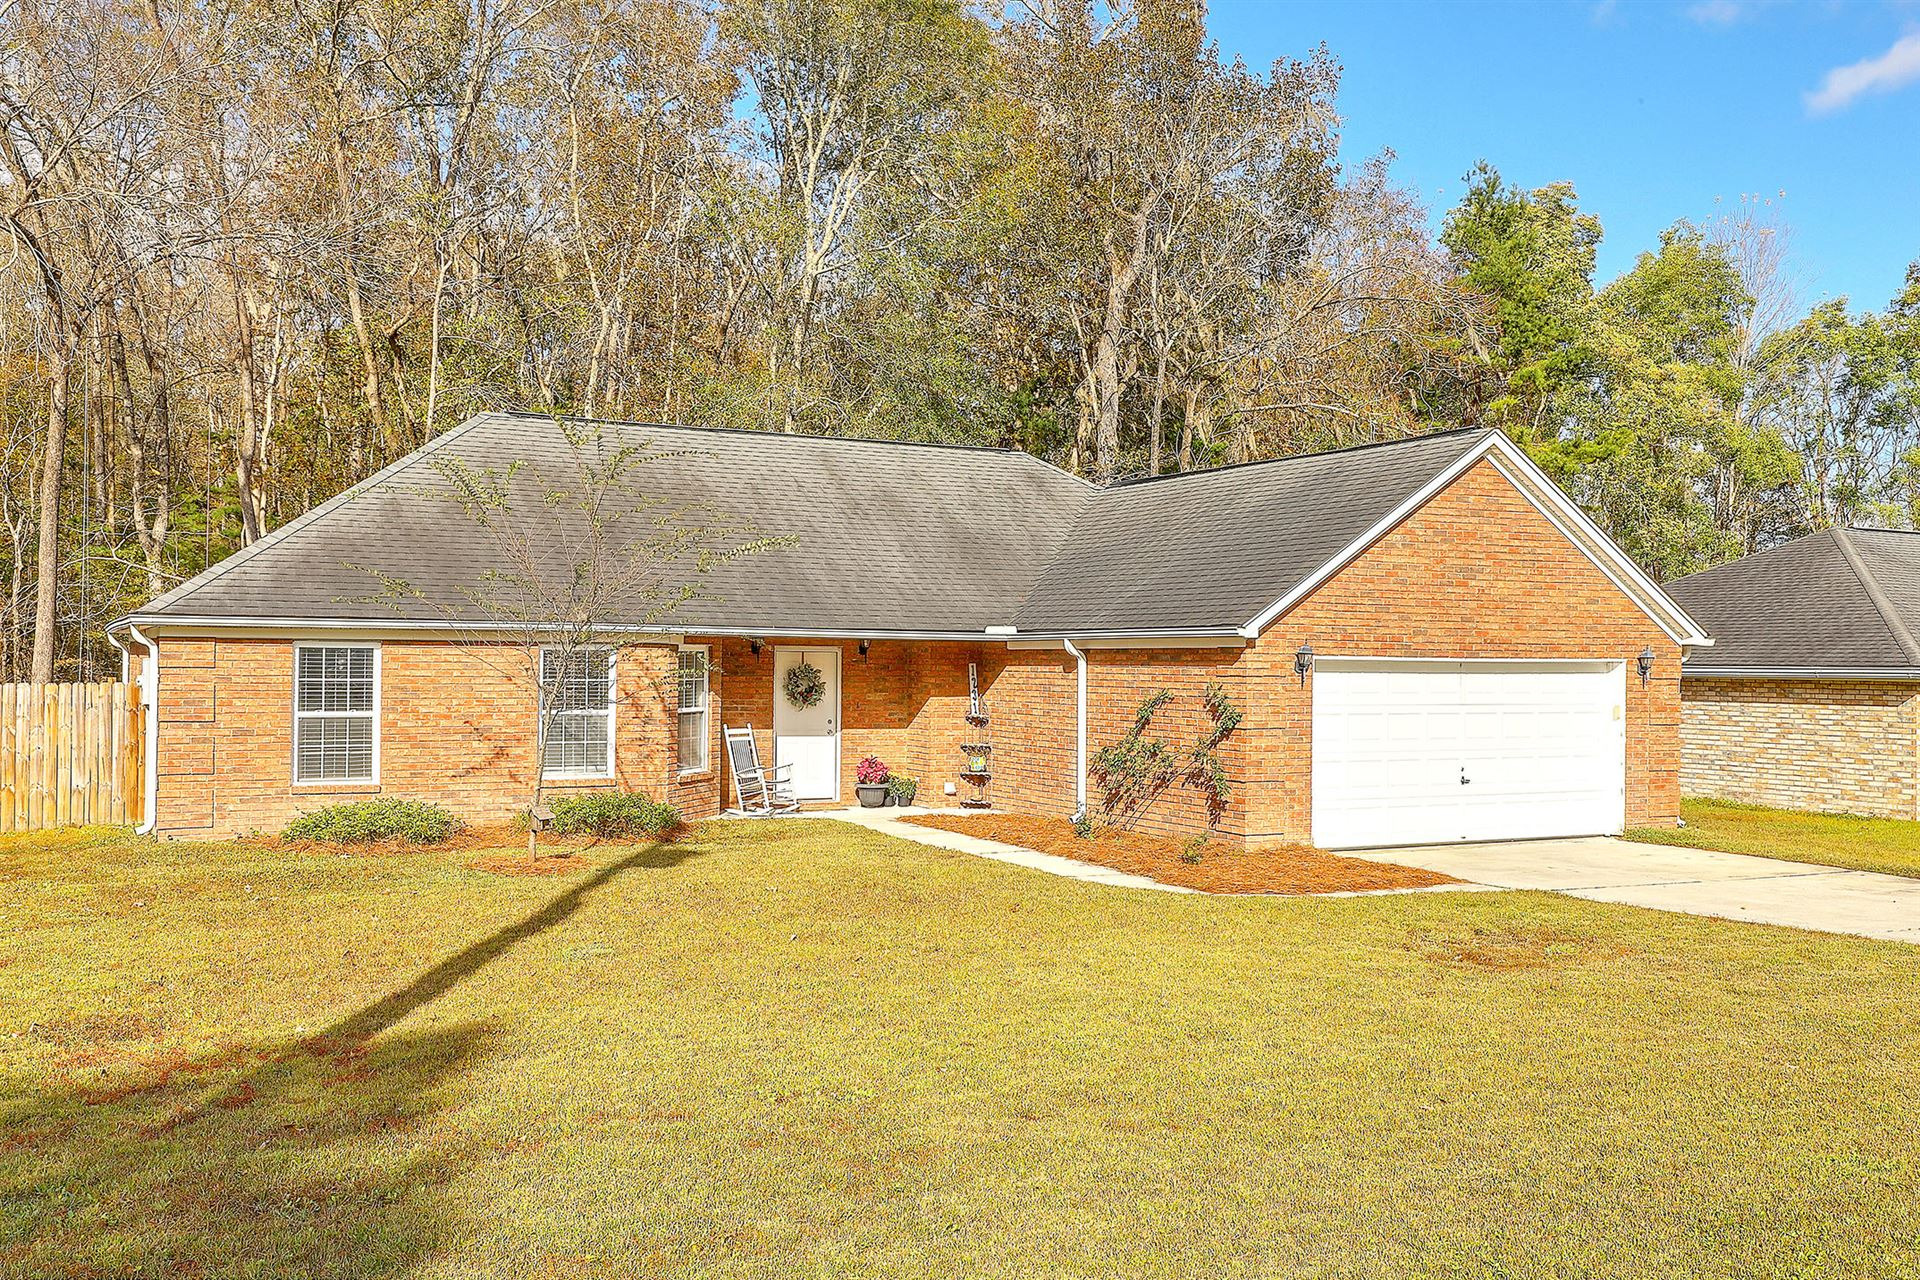 Photo of 1231 Saylors Avenue, Moncks Corner, SC 29461 (MLS # 20032079)